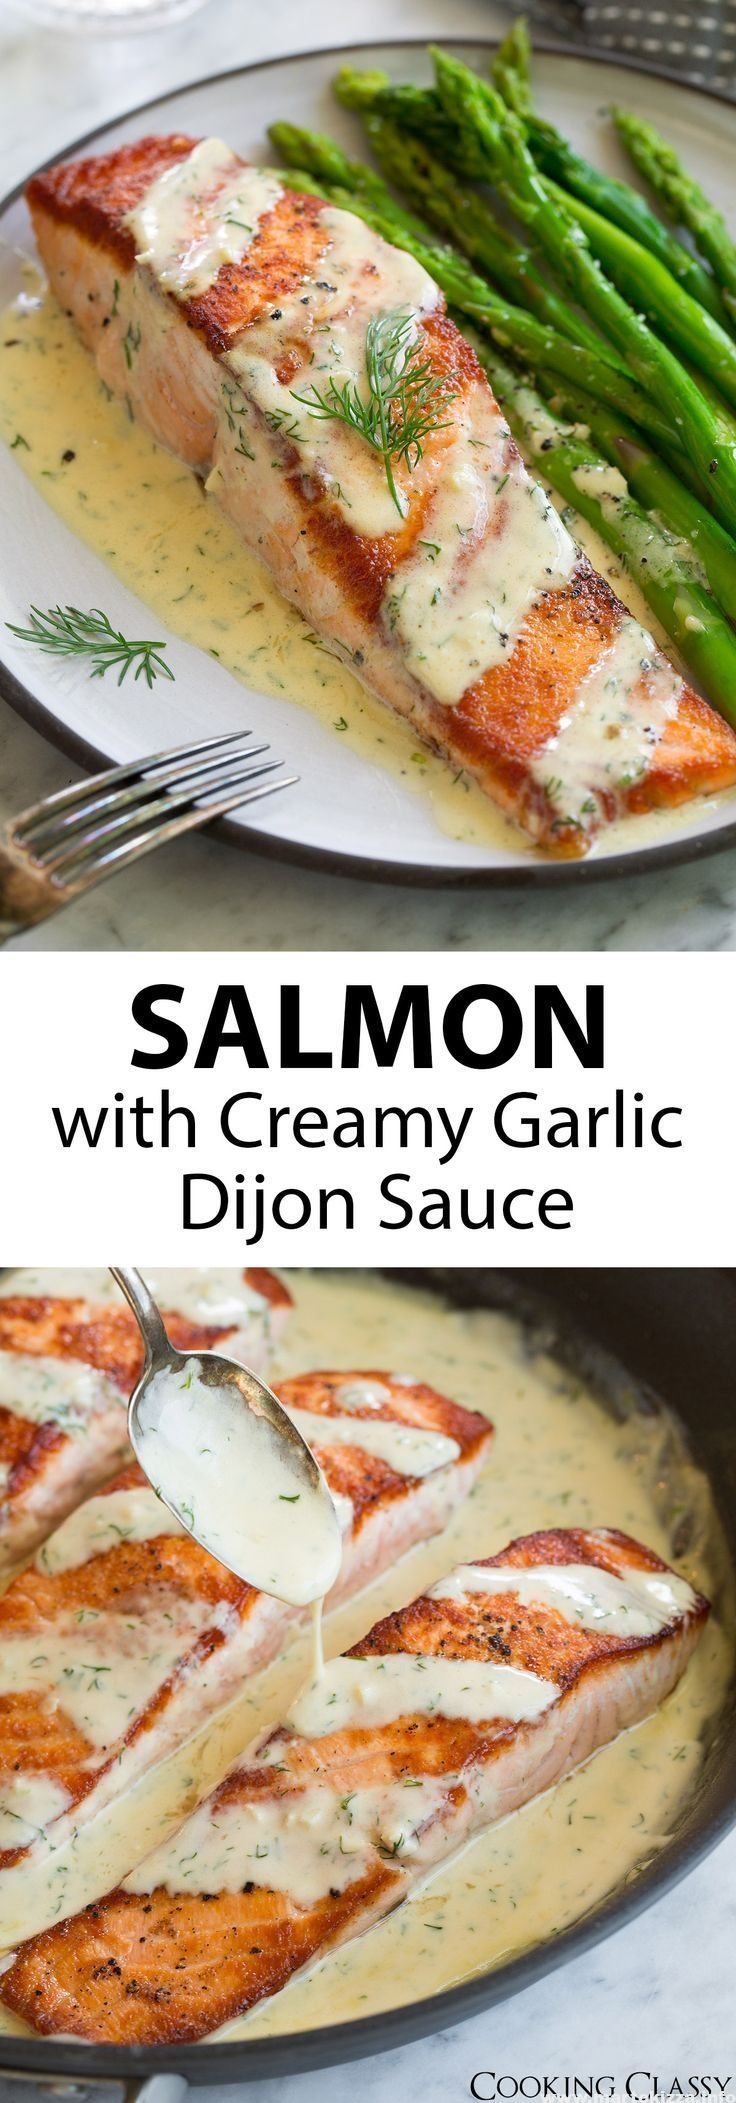 Salmon with Creamy Garlic Dijon Sauce - This is such a flavorful, elegant salmon recipe th... -